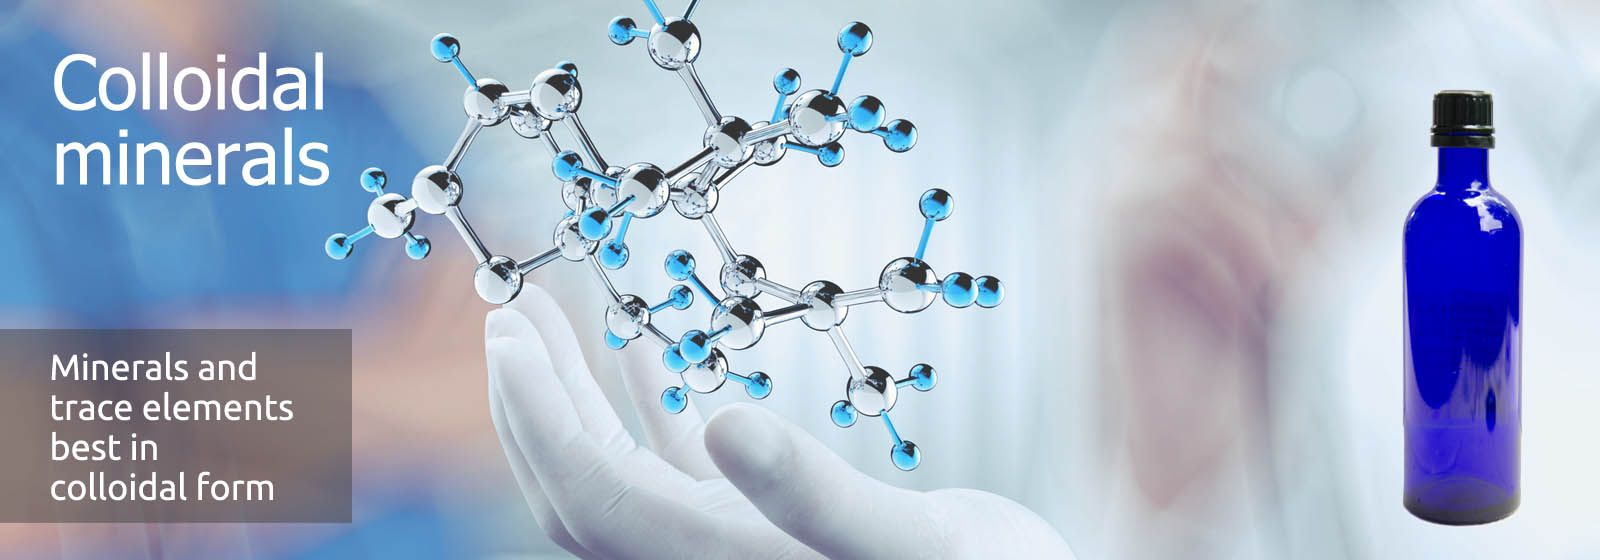 The shiny metal model of a molecule hovers over a white hand